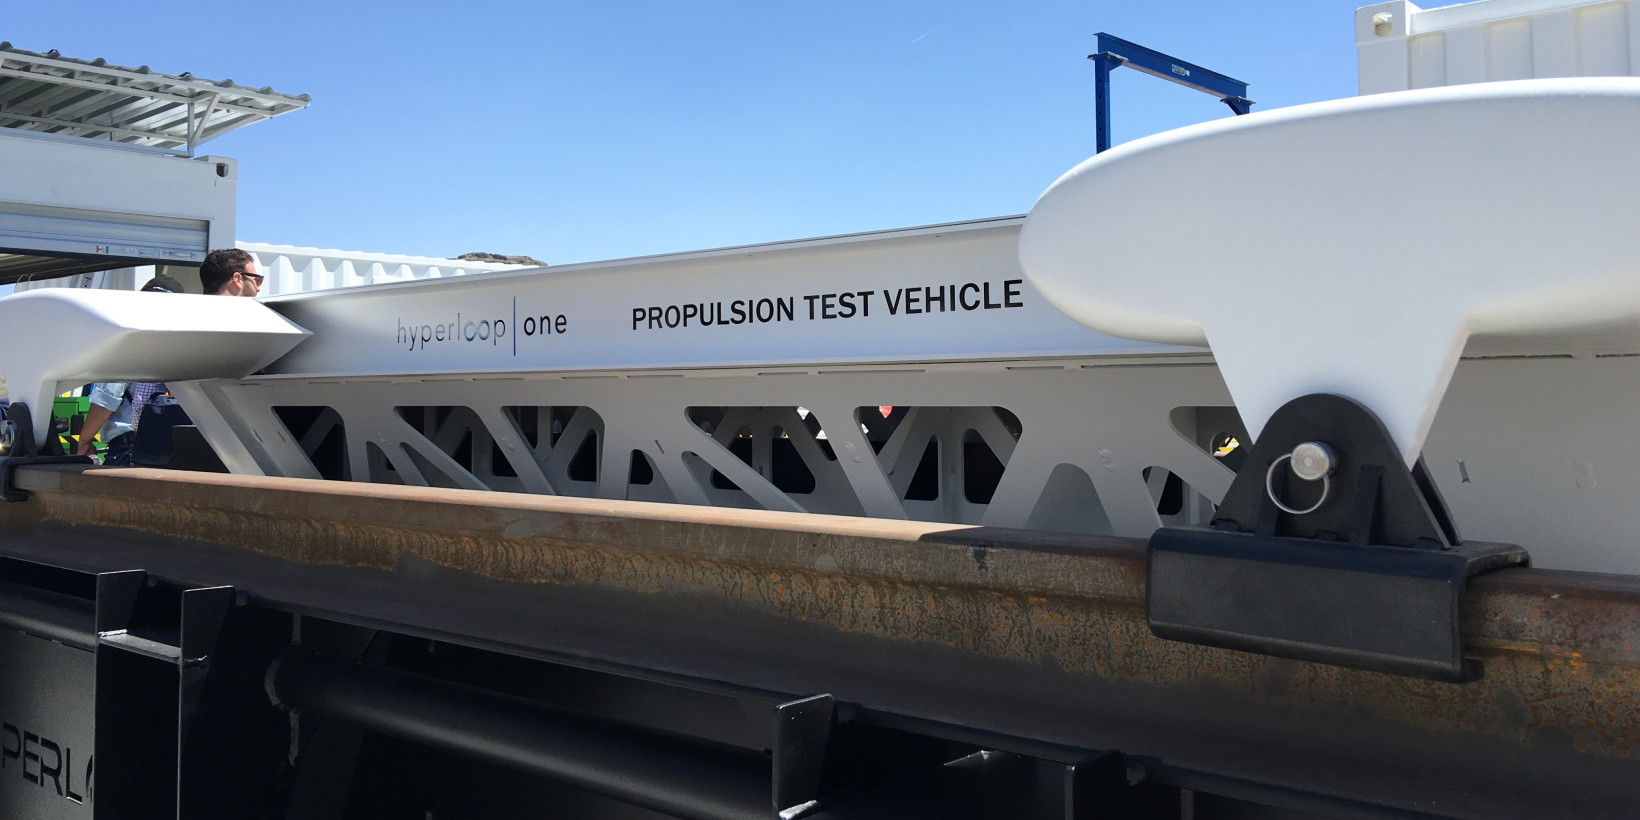 A mockup of the sled used in Hyperloop One's Propulsion test